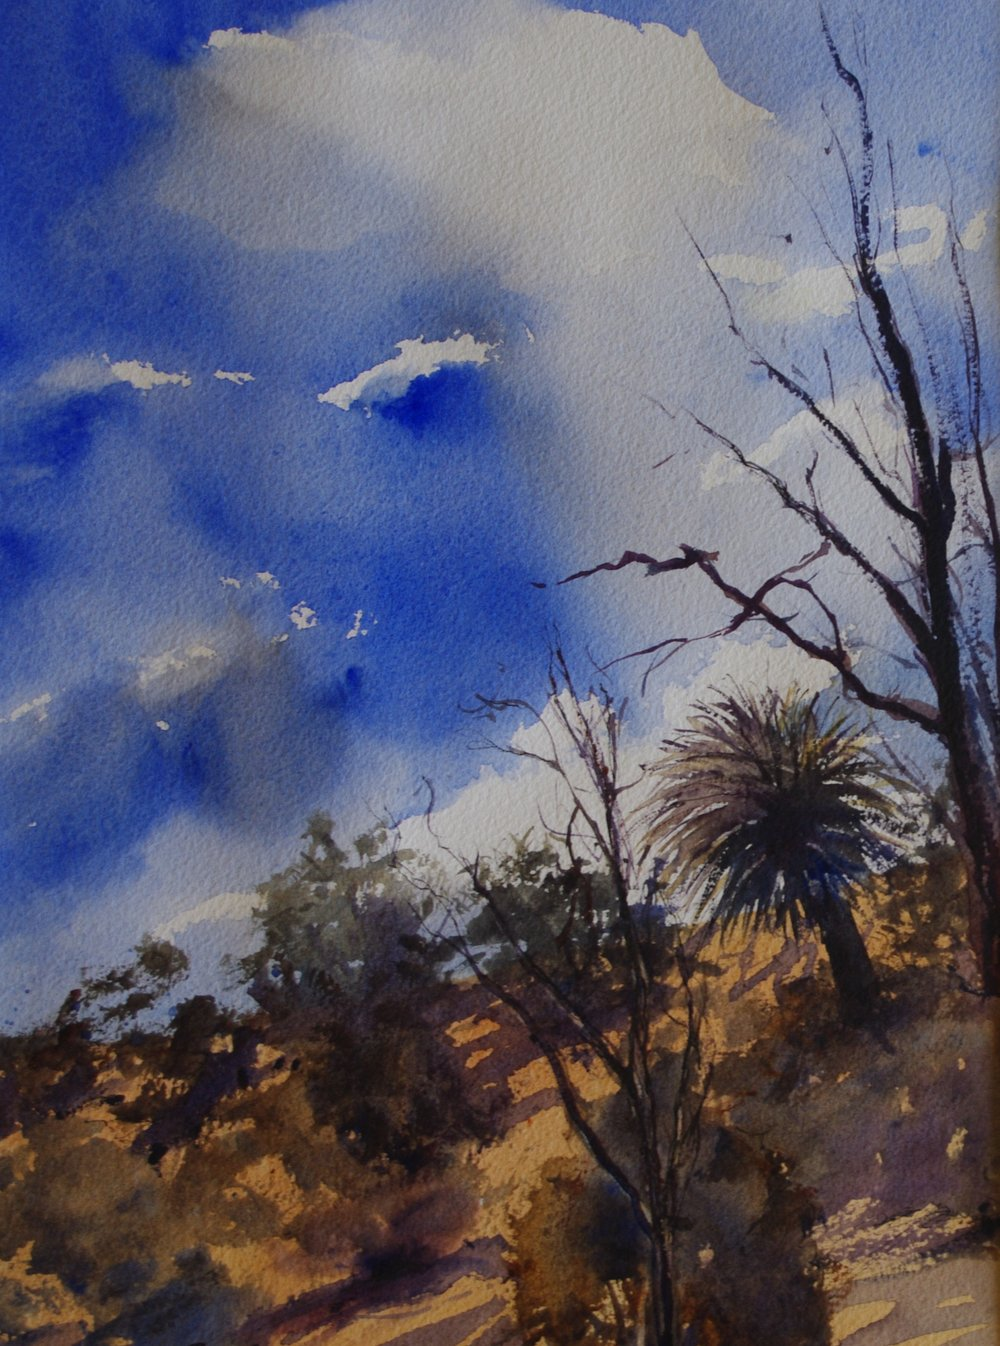 Australian Bush Scene    26cm x 36cm    Original Watercolour    Unframed      $150